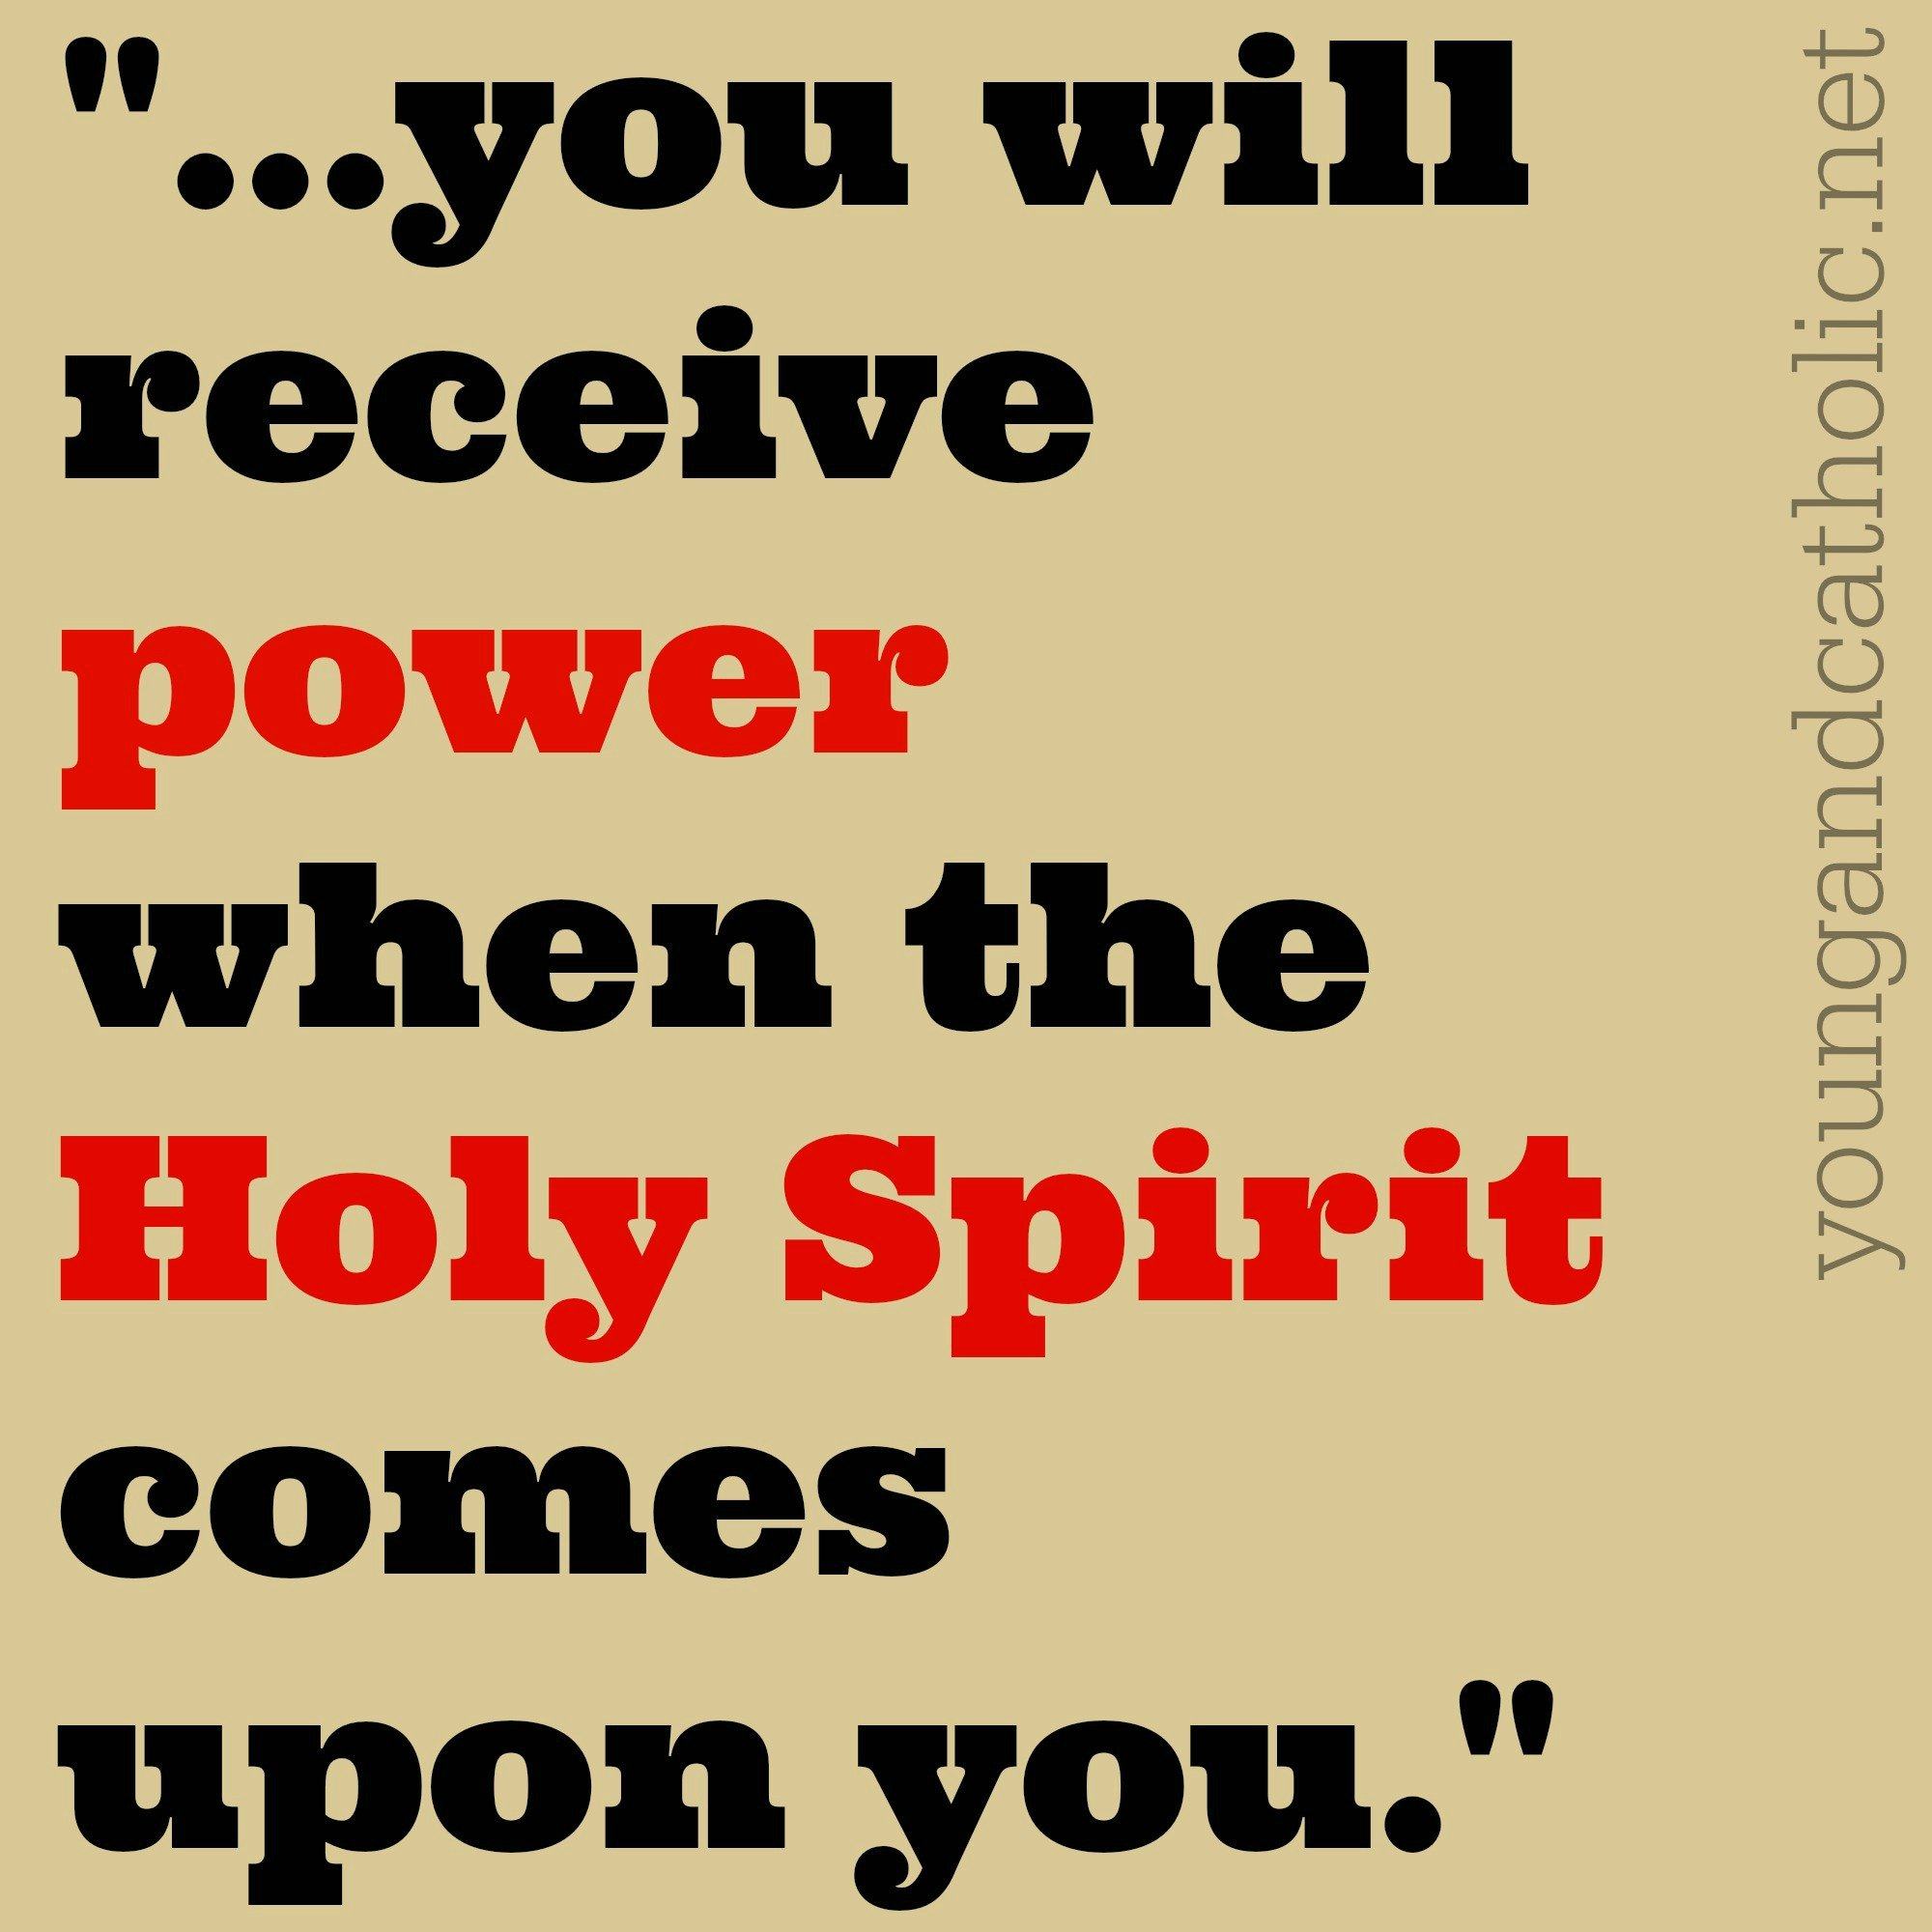 Pentecost Sunday Quotes Sayings. QuotesGram